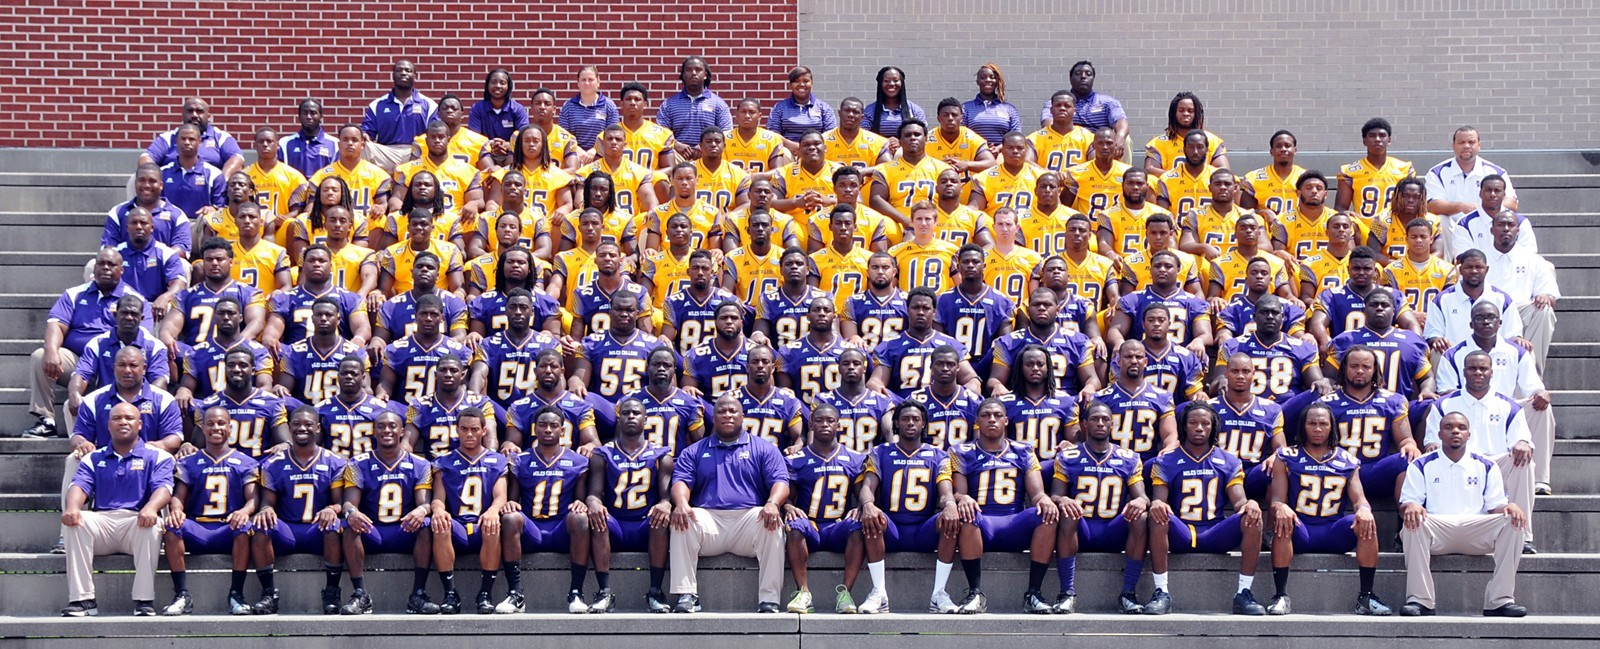 Alabama Football Roster 2013 Football Roster Miles College Athletics